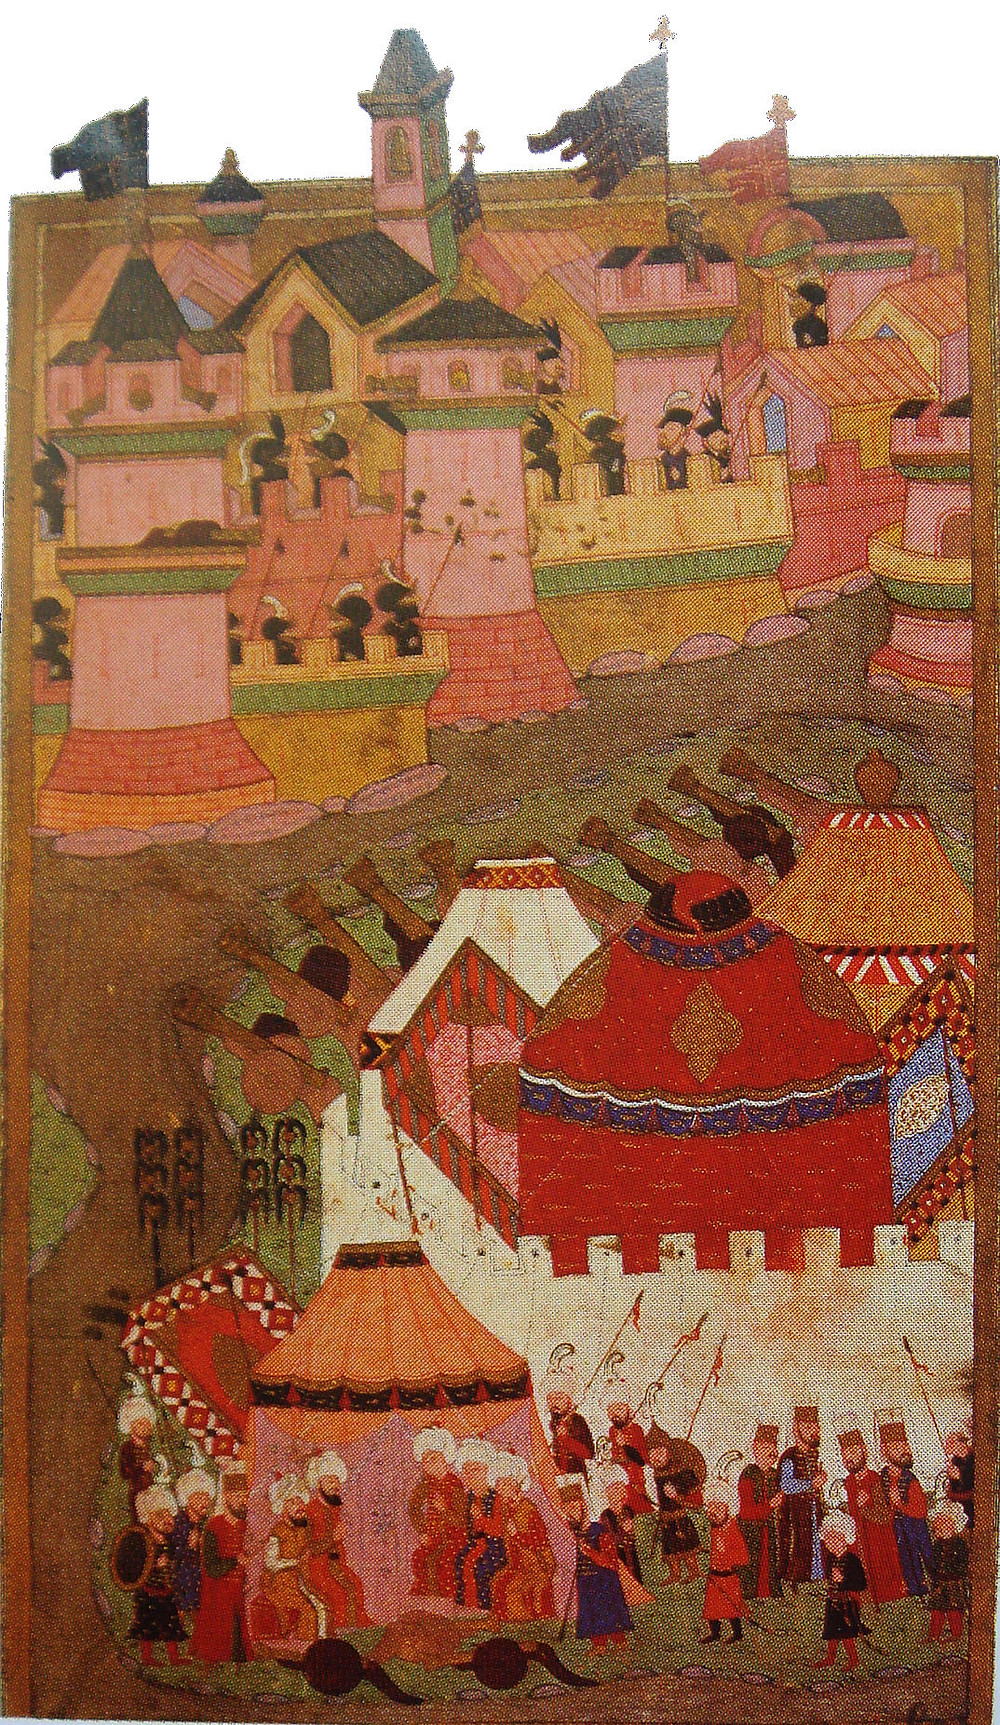 An Ottoman depiction of the 1529 Siege of Vienna